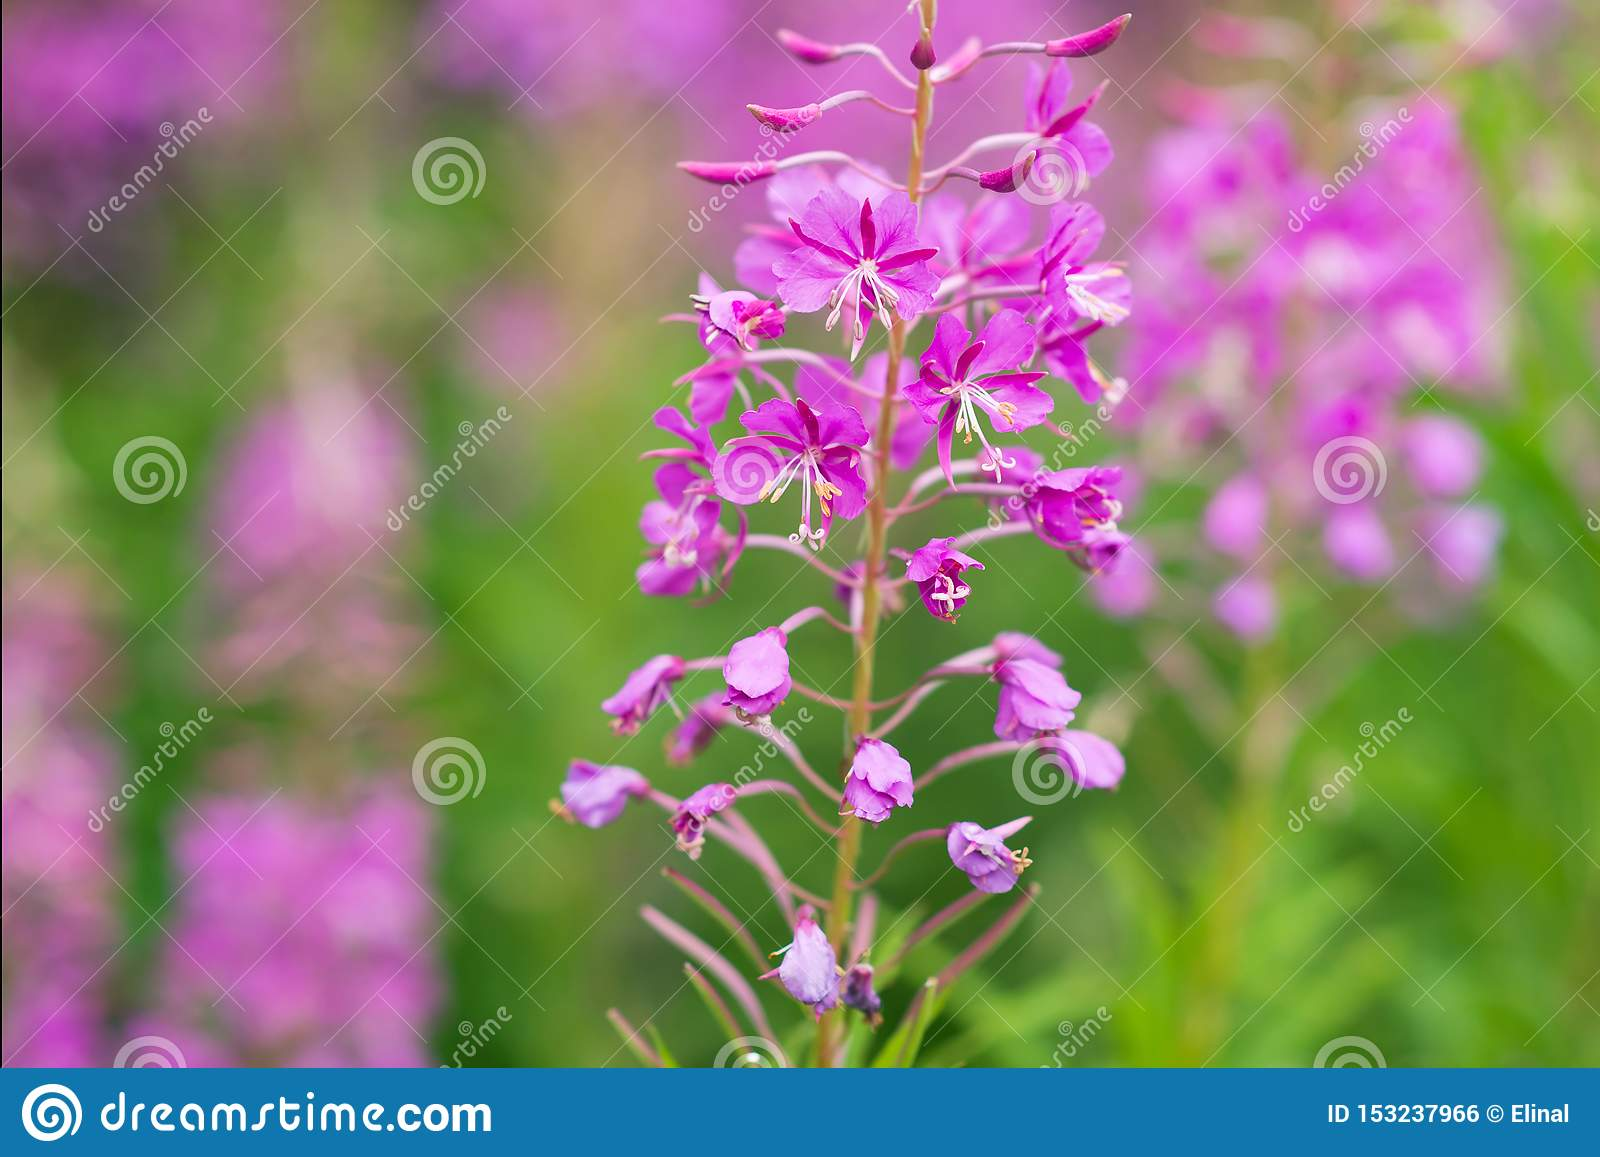 Rosebay willowherb or fireweed closeup, violet, purple flower background. Nature